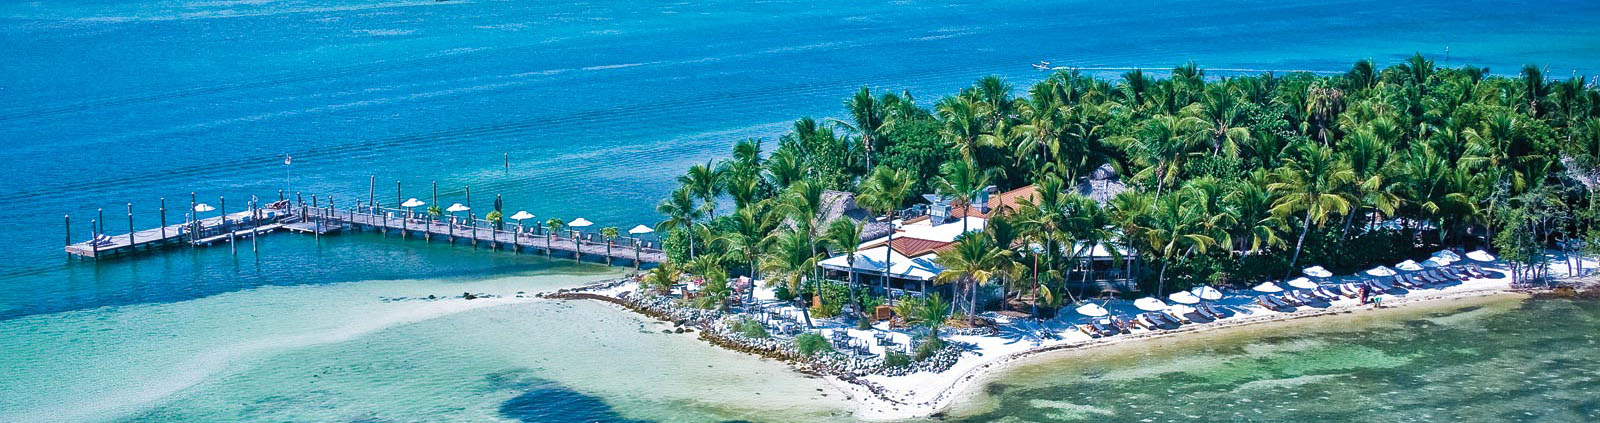 The Florida Keys Tropical Islands 120 Miles - Atlantic Ocean and Gulf of Mexico